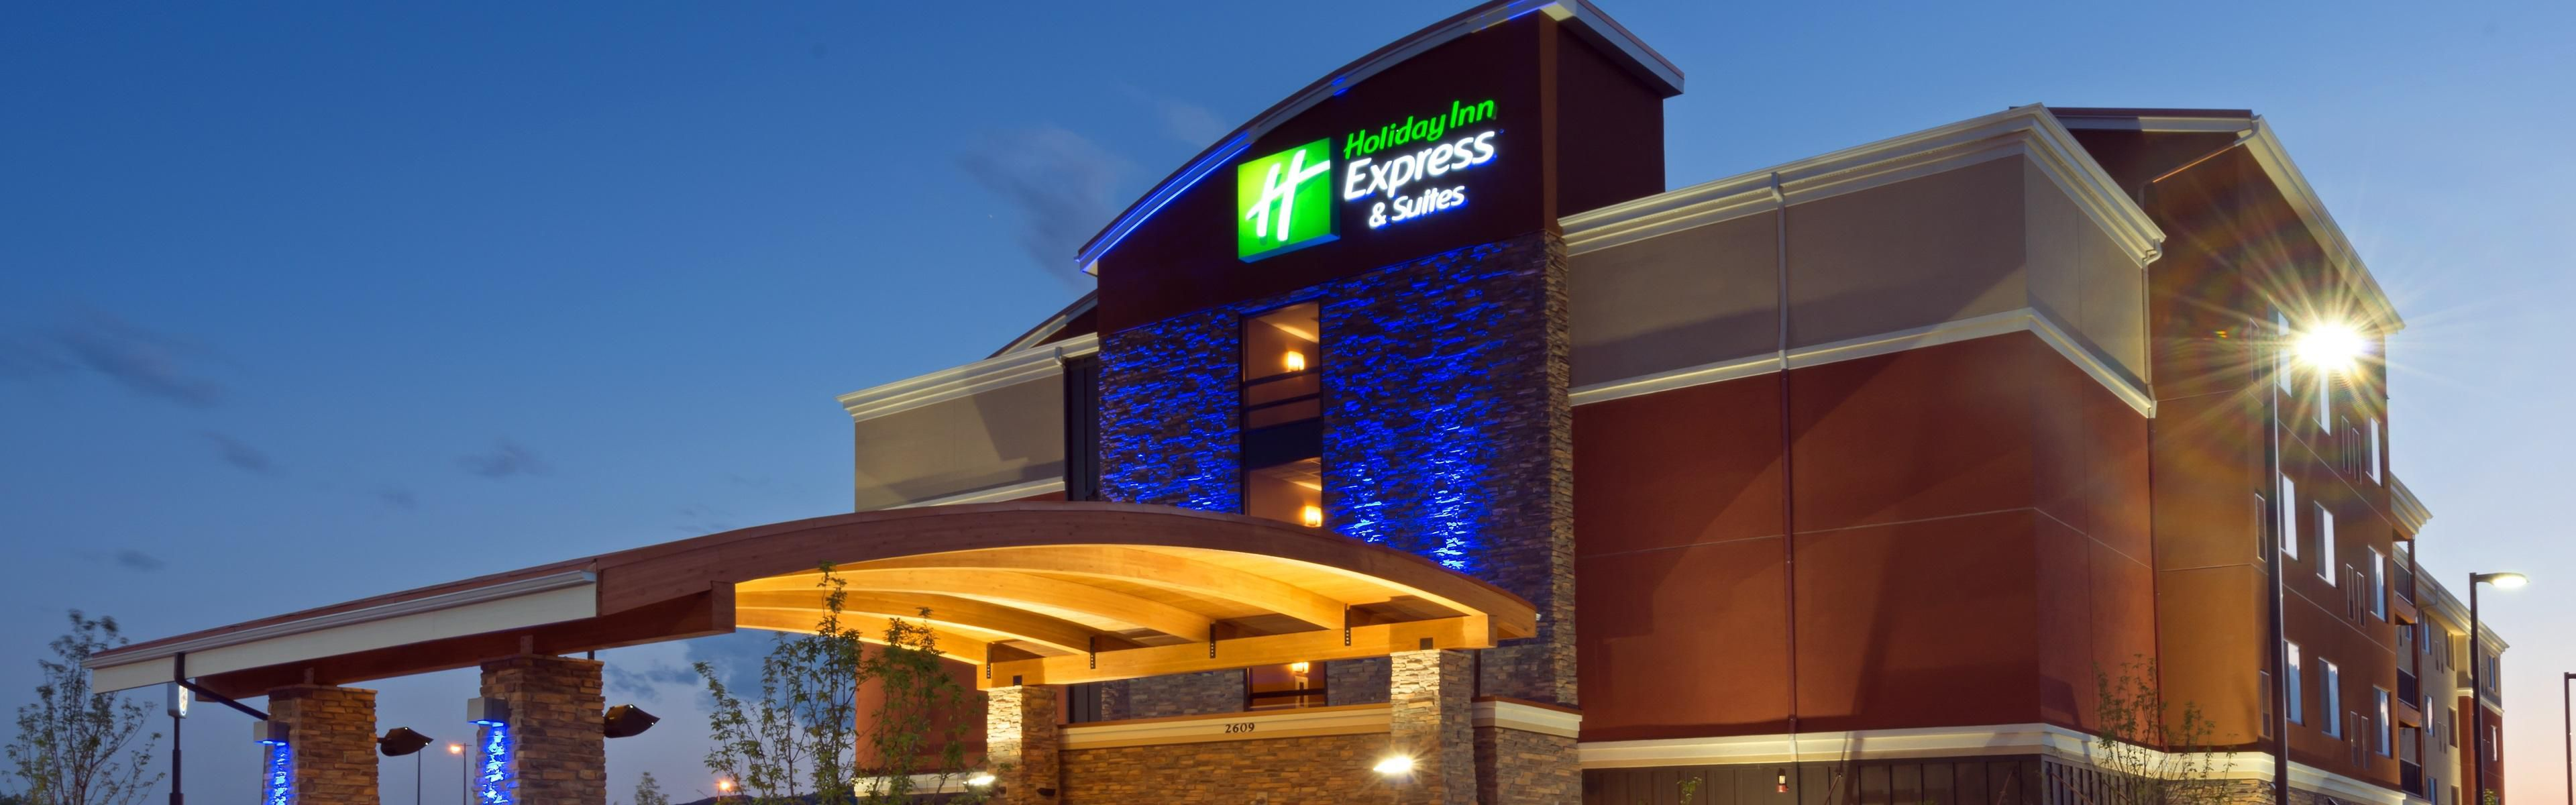 Holiday Inn Express & Suites Butte image 0